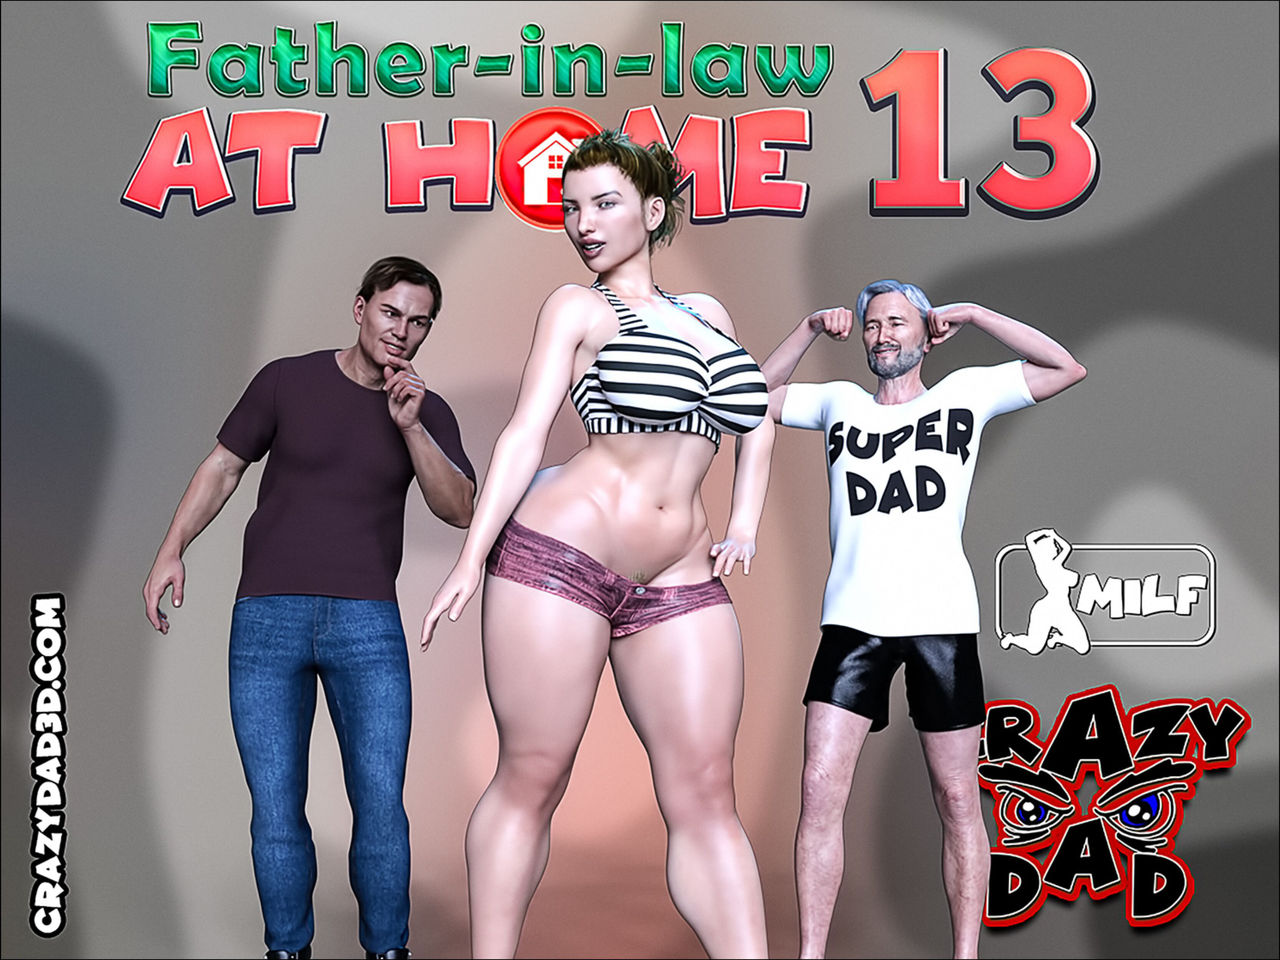 FATHER in LAW at Home parte 13